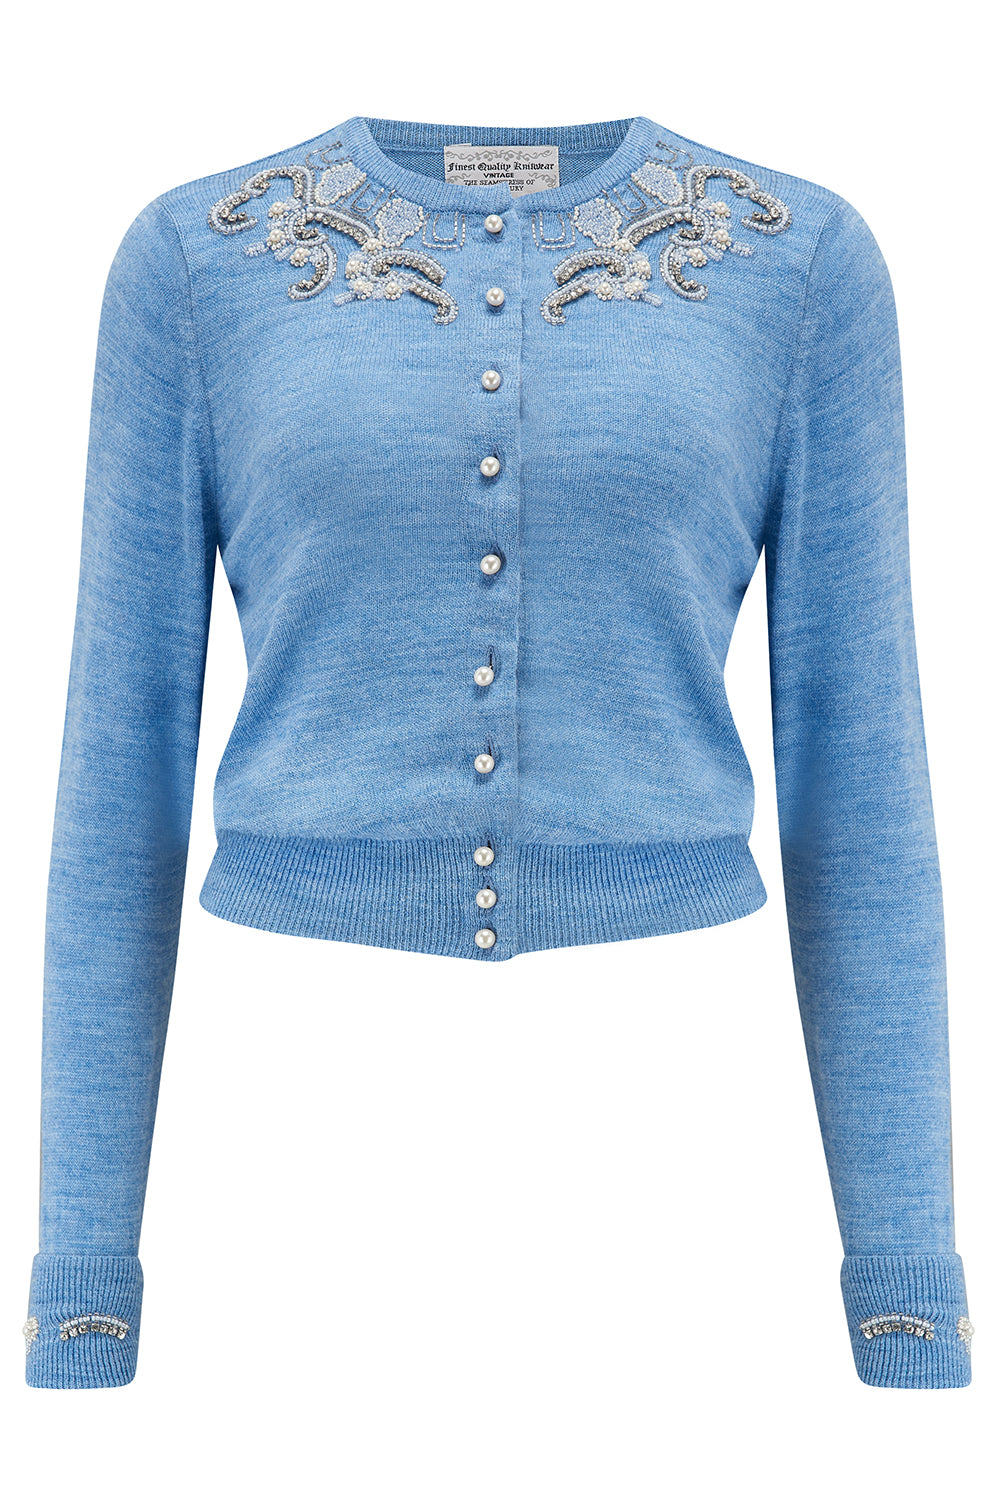 The Seamstress Of Bloomsbury The Beaded Cardigan in Marl Blue, Stunning 1940s Vintage Style - RocknRomance Clothing